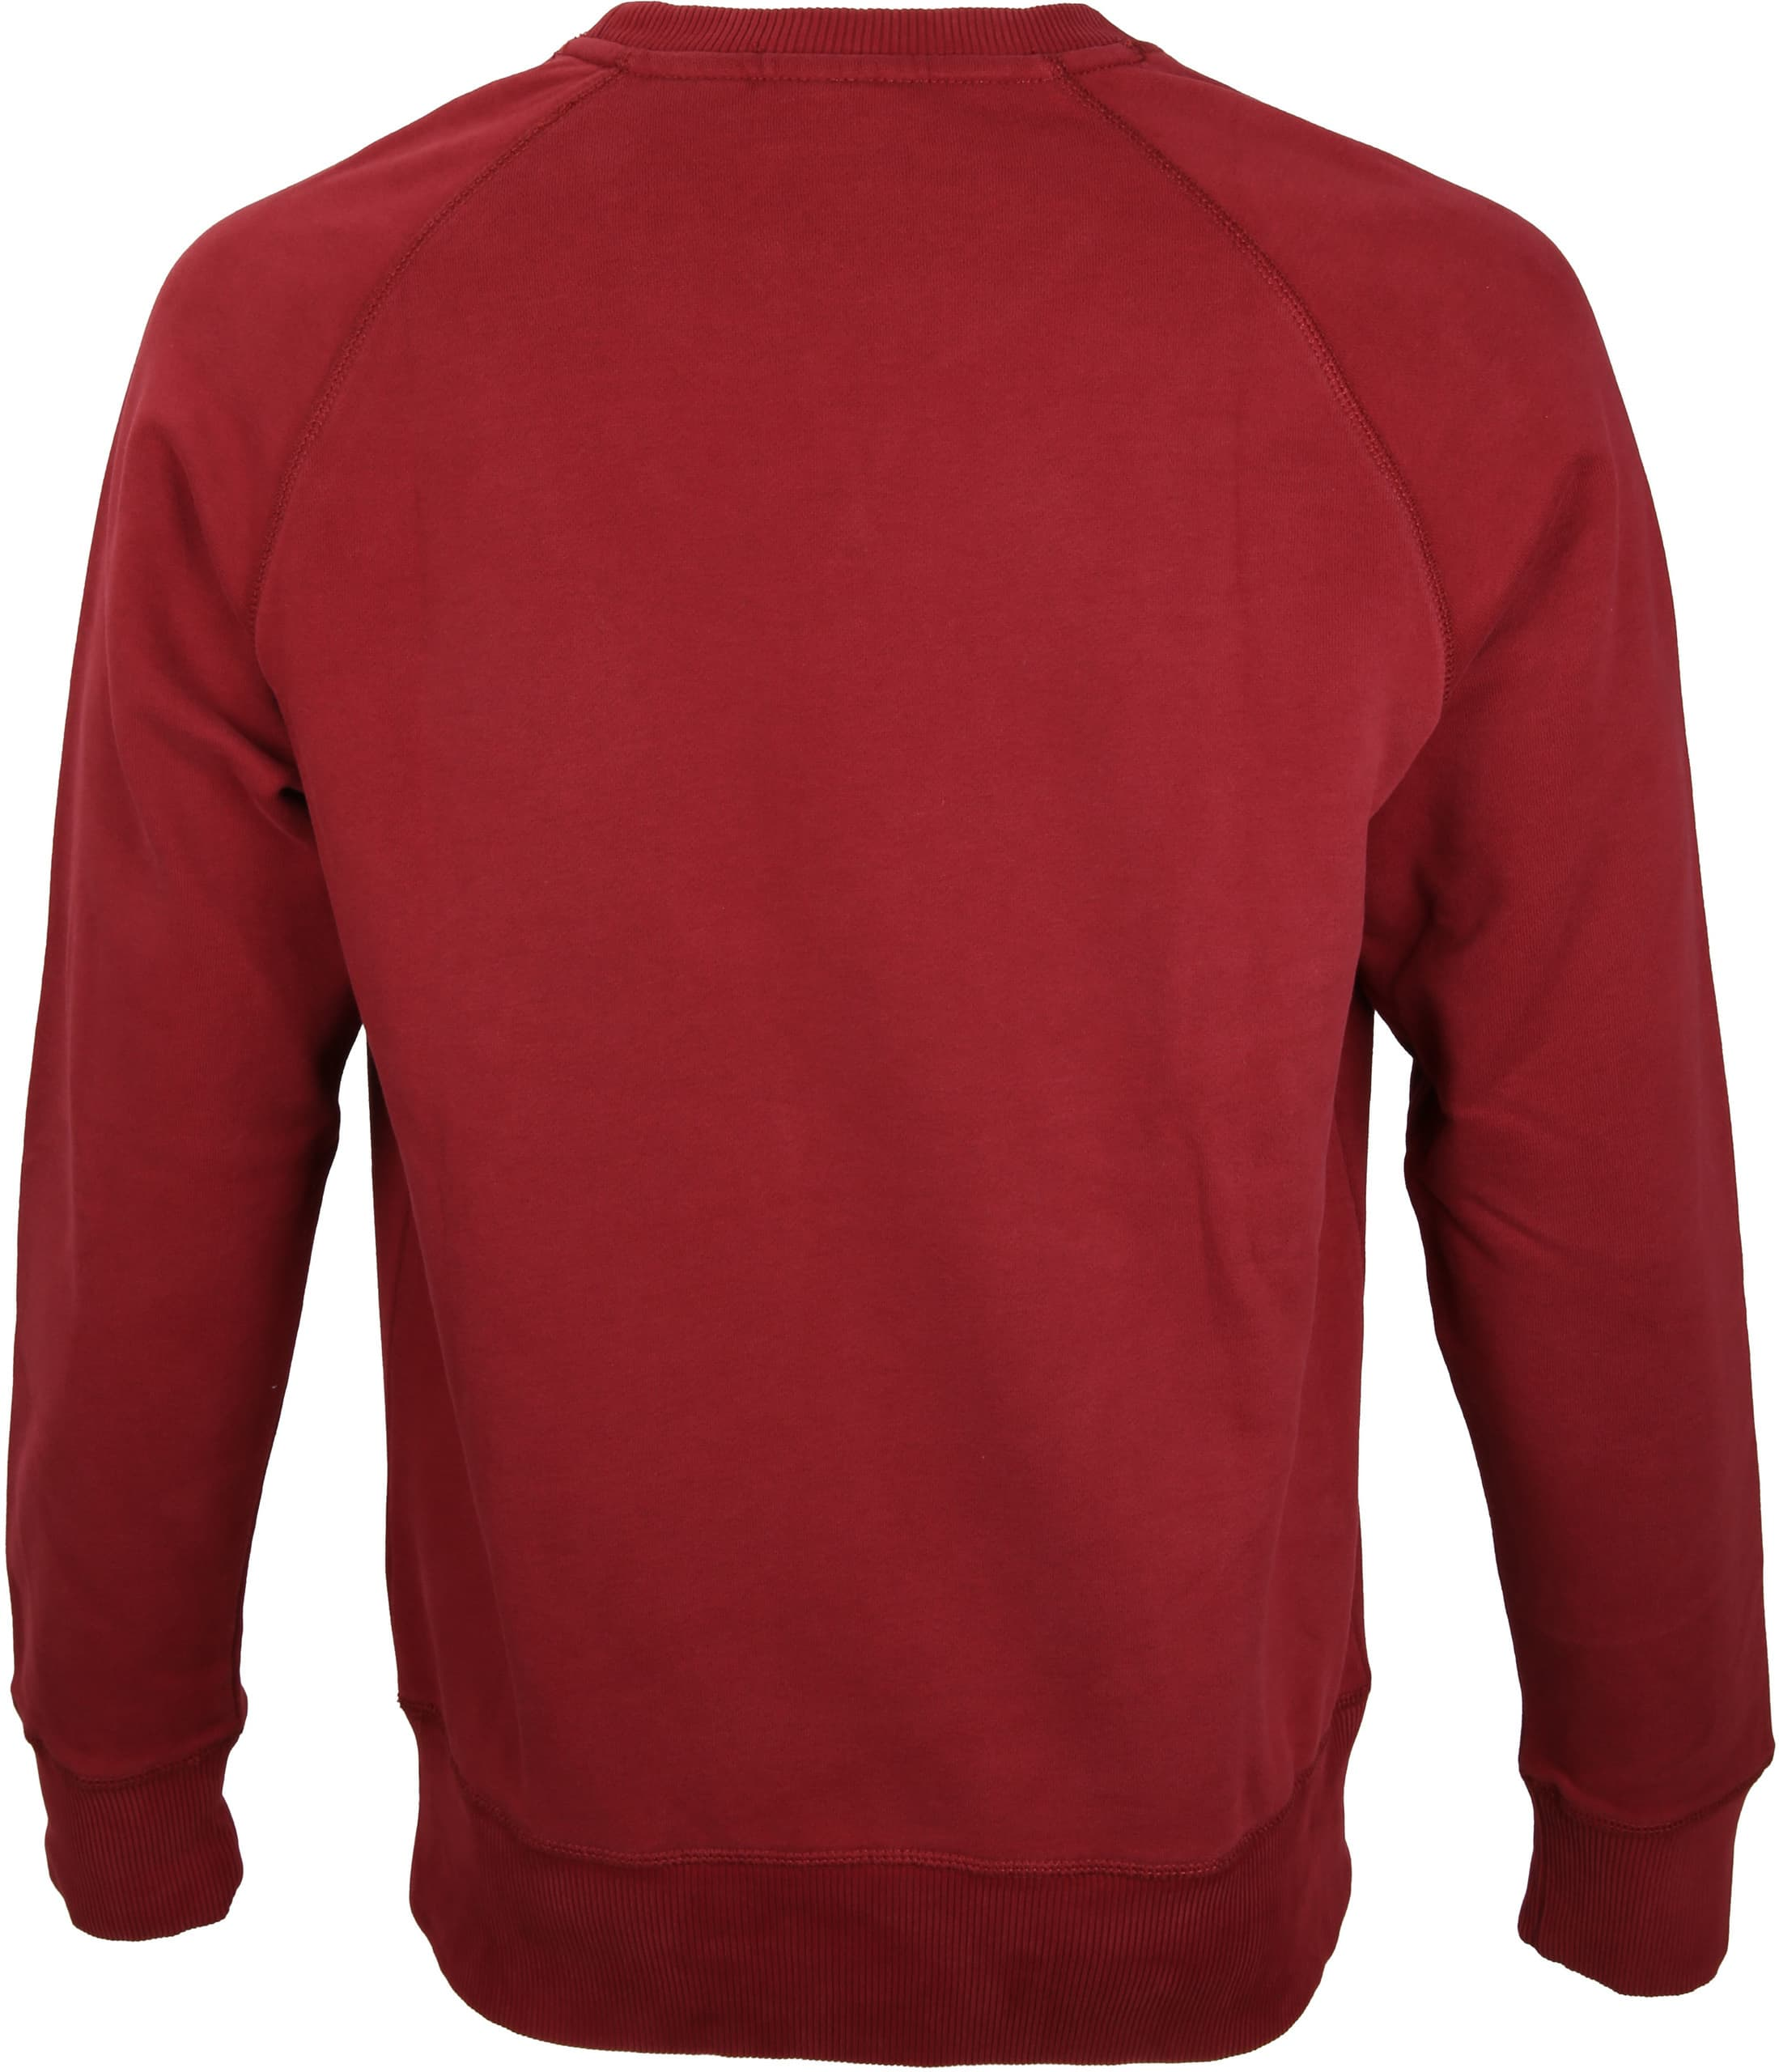 Timberland Sweater Bordeaux foto 2